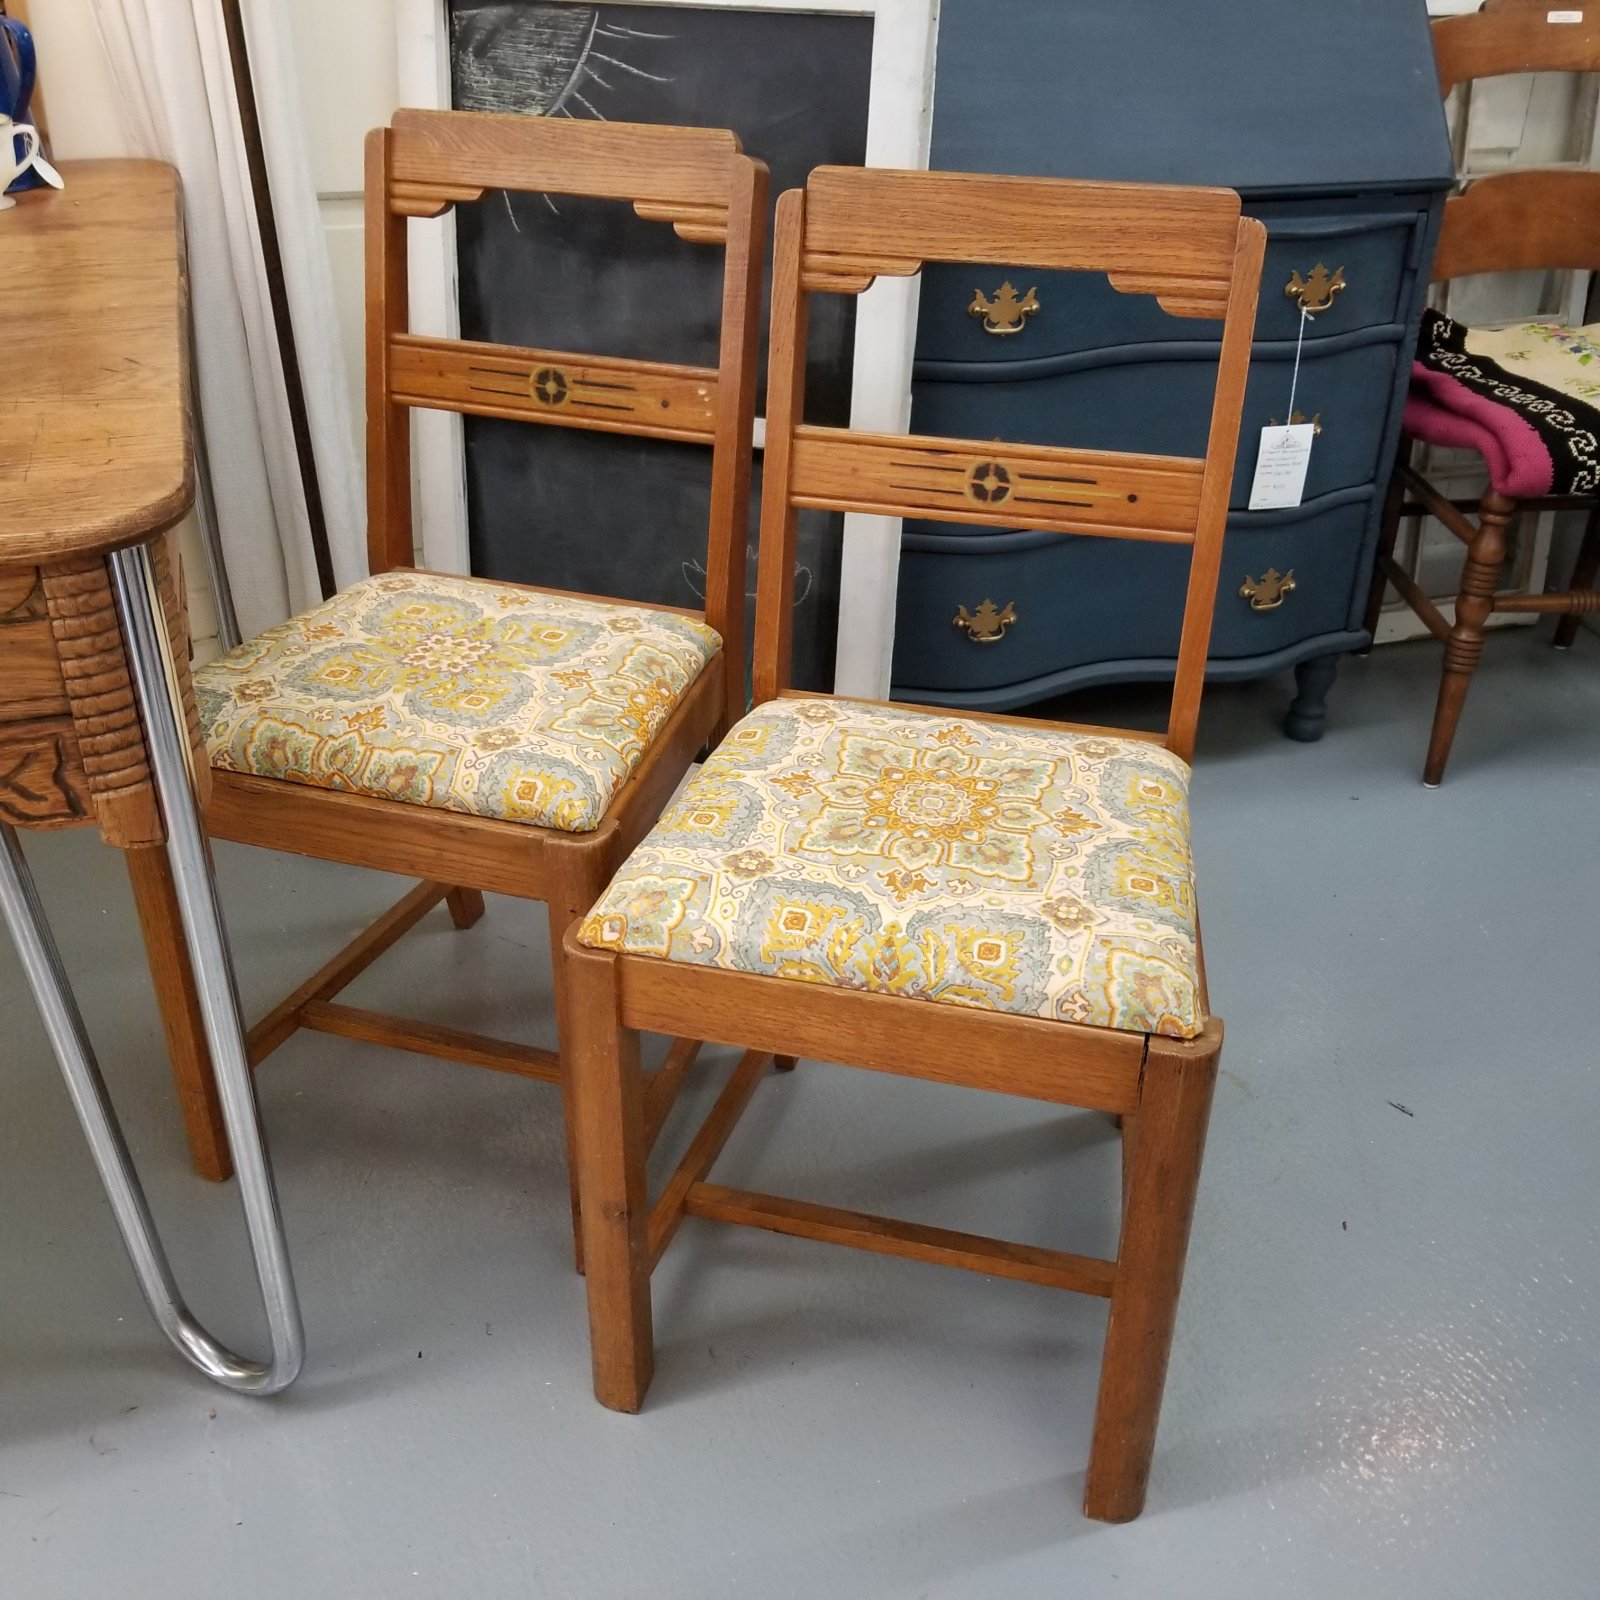 Pair of Oak Chairs with New Fabric on Seats